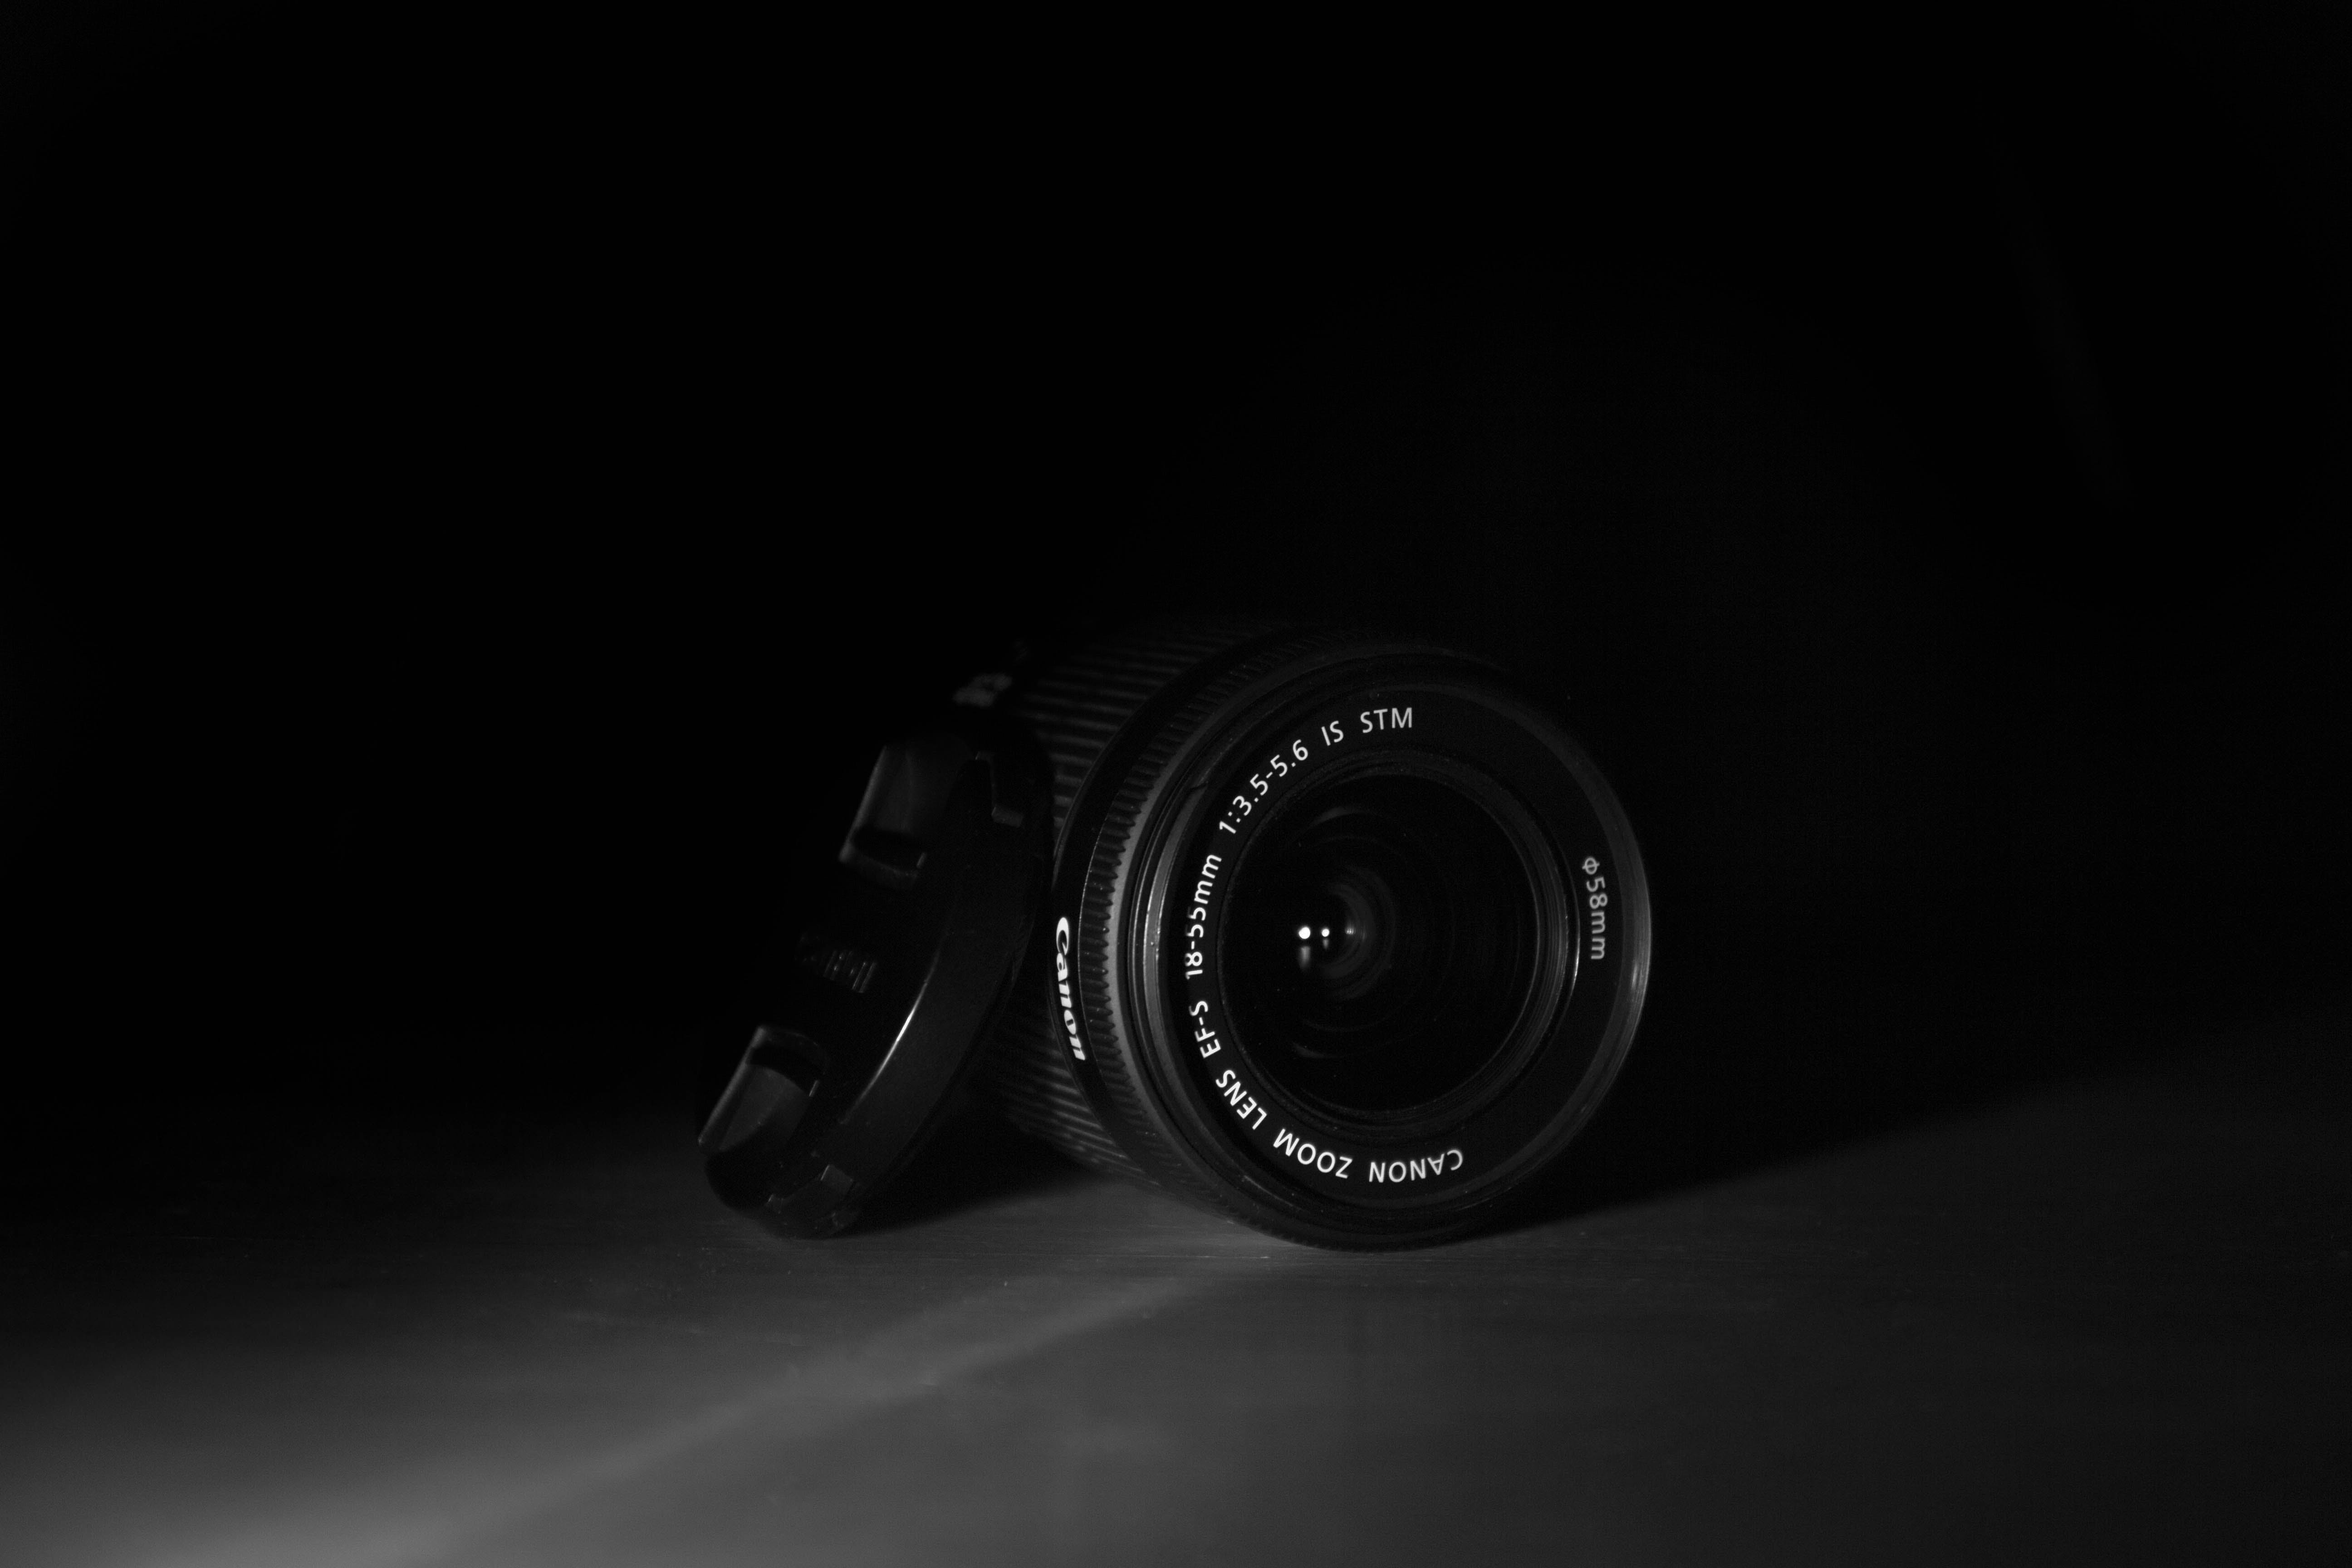 Black Dslr Camera With Black Background